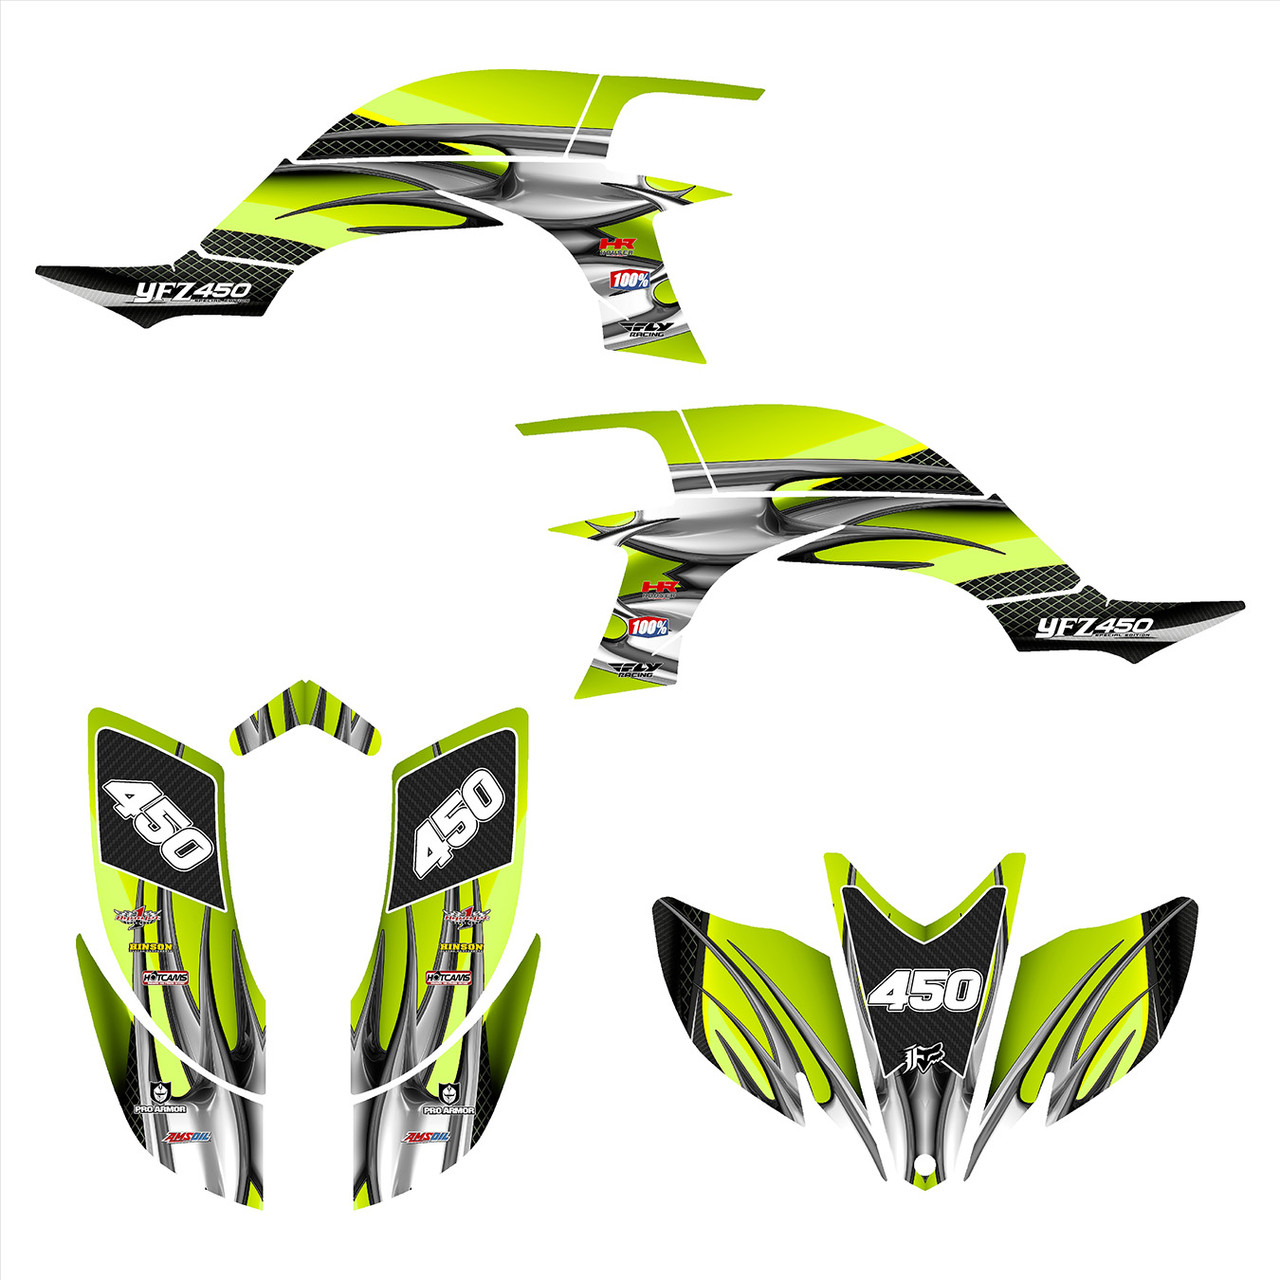 2008 Yamaha YFZ 450 graphics decal kit